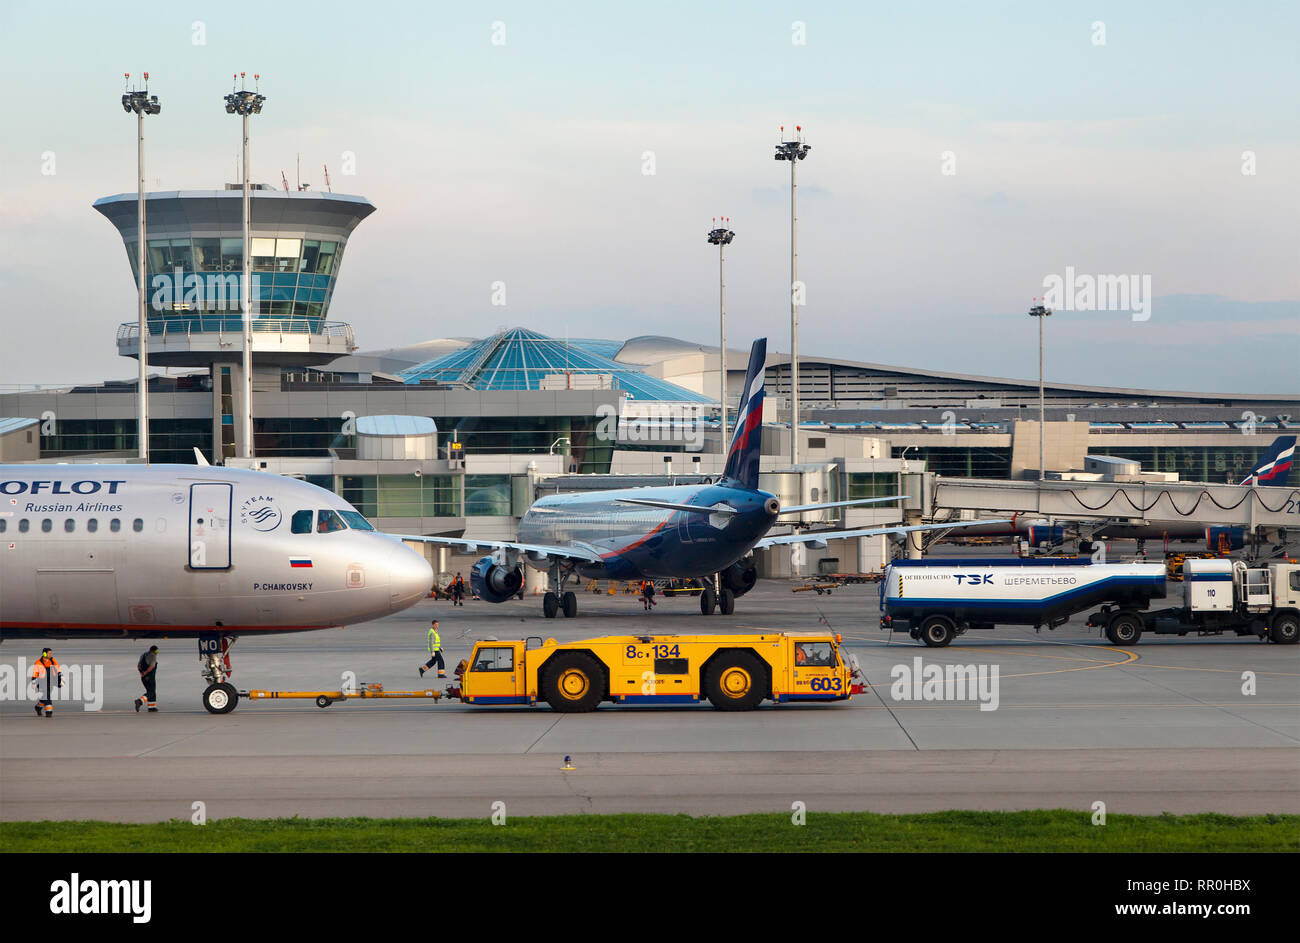 View of the Terminal D of Sheremetyevo airport and Aeroflot airline aircrafts in Moscow, Russia - Stock Image